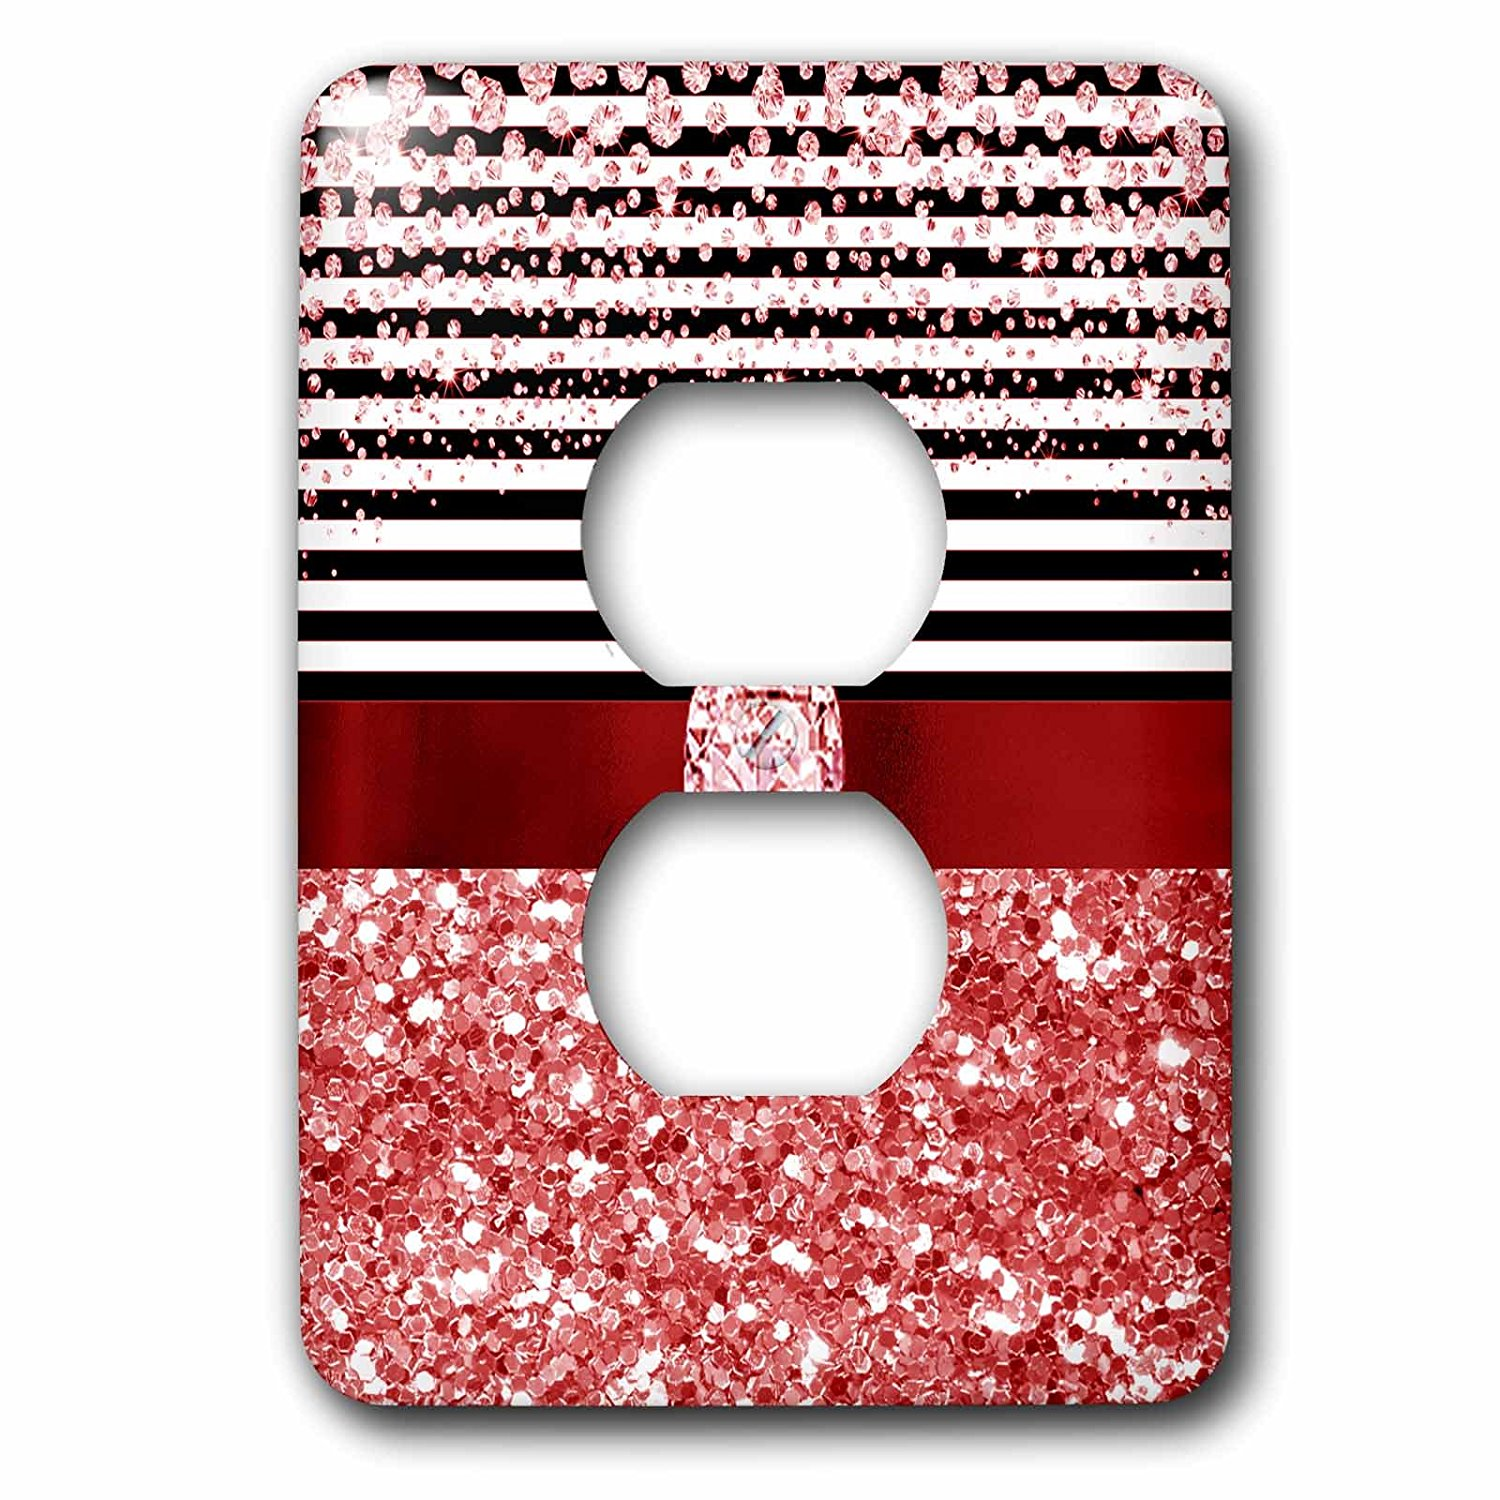 3dRose Anne Marie Baugh - Glitter and Chic - Diamond Stripes, Red Digital Glitter and Diamond Design - Light Switch Covers - 2 plug outlet cover (lsp_267804_6)